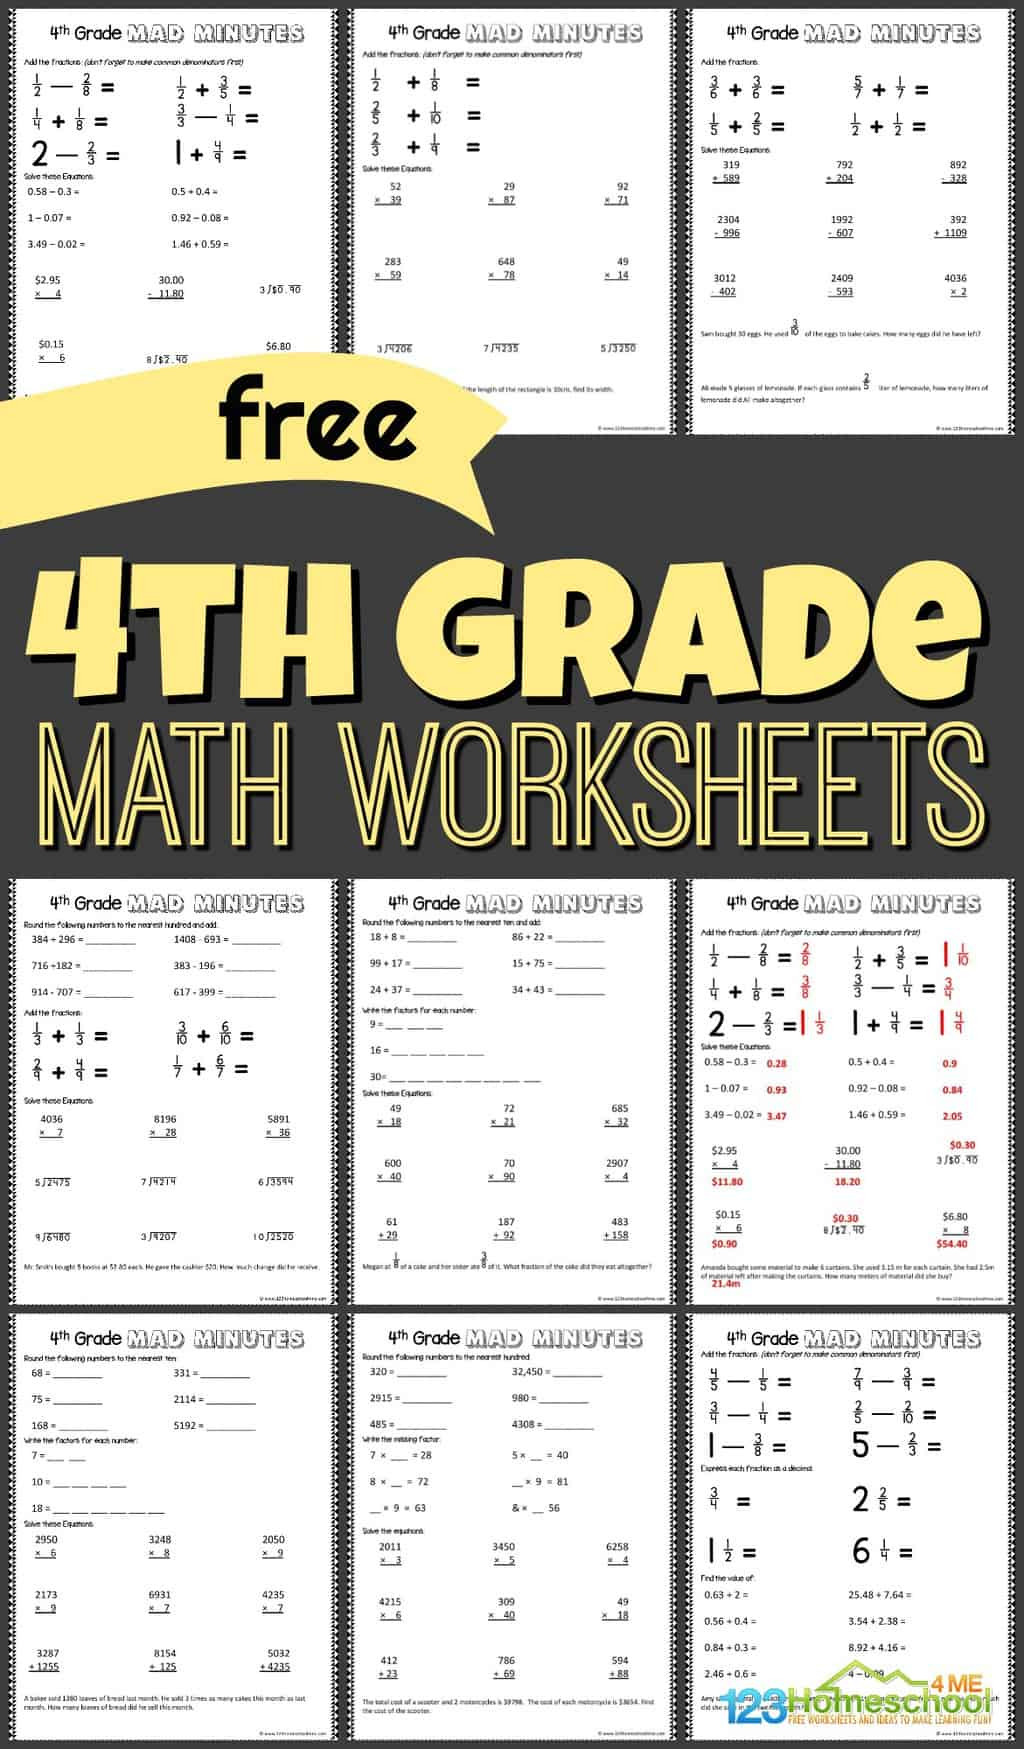 Free Saxon Math Worksheets Math Worksheet 4th Gradeorksheets Printable Math Free